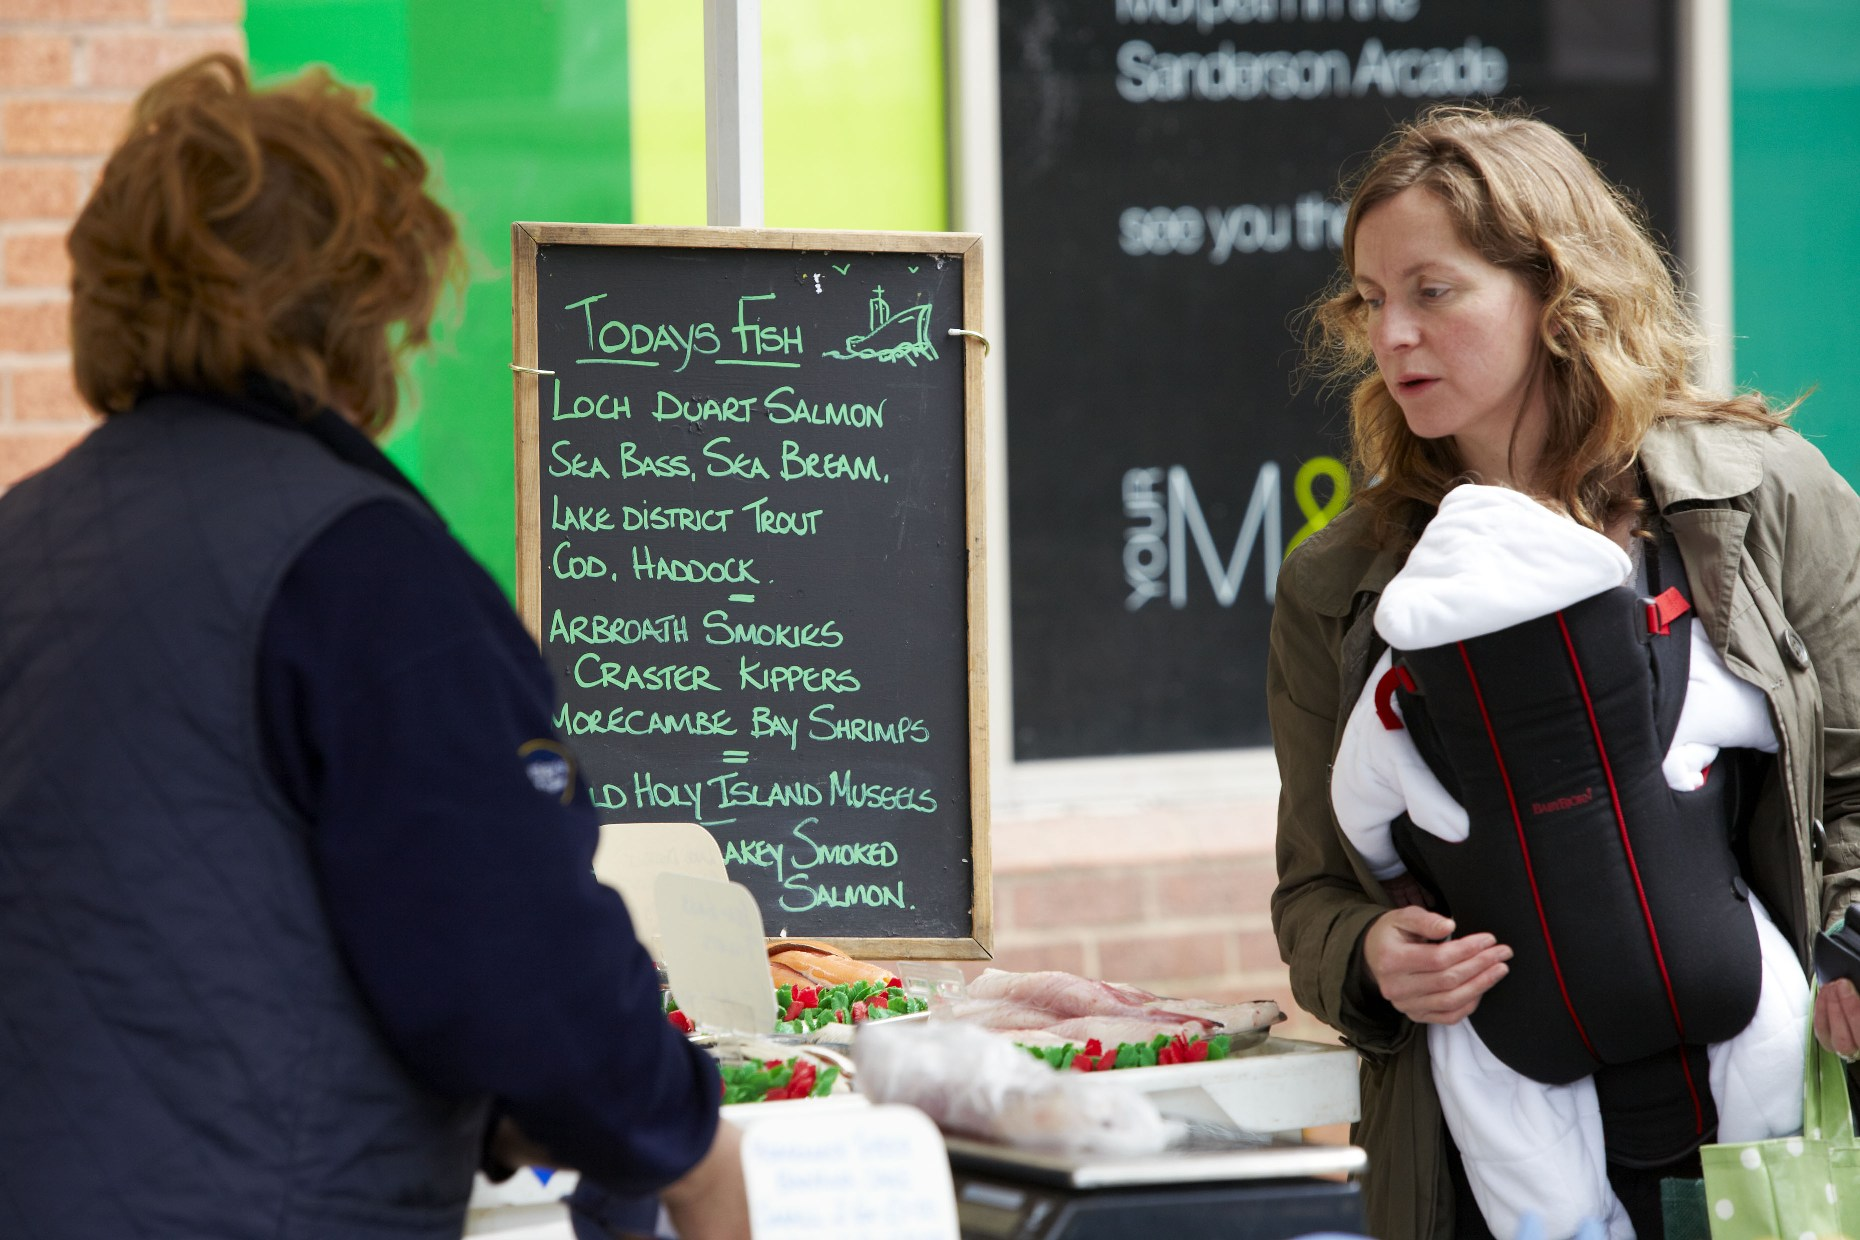 Mother and child Shopping in Morpeth ©www.visitnorthumberland.com.